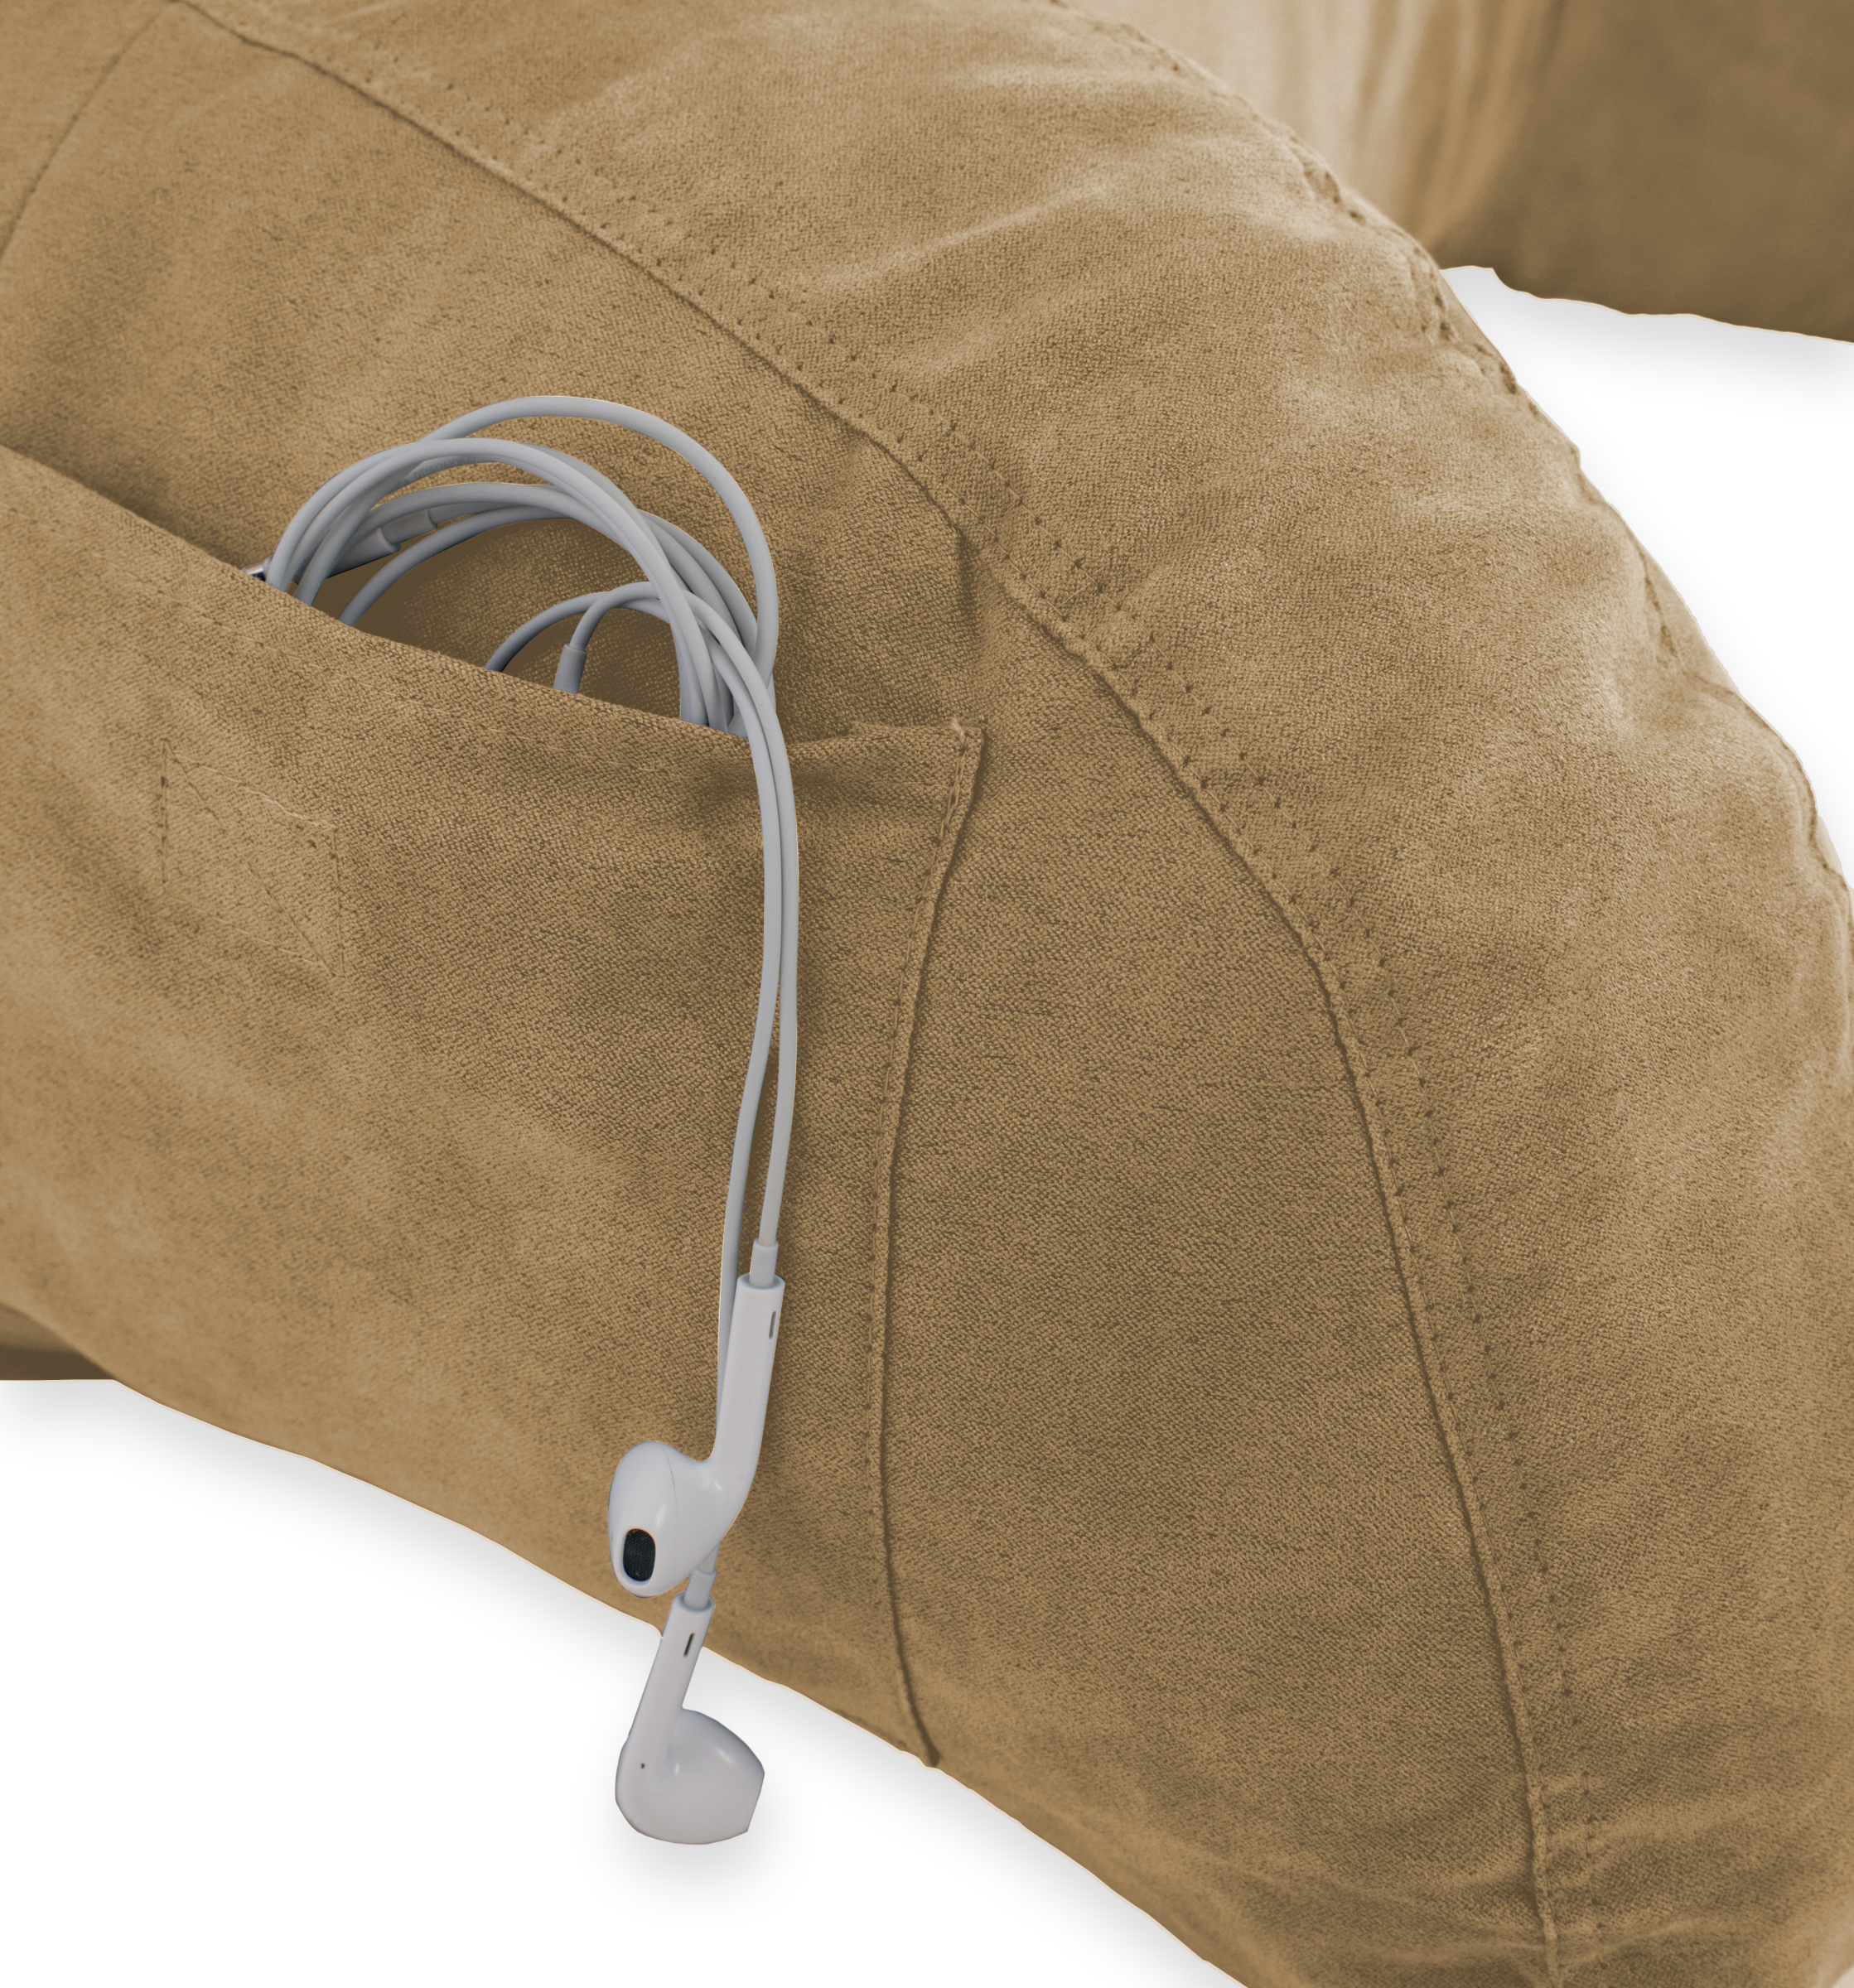 Microsuede-Bed-Rest-Reading-and-Bed-Rest-Lounger-Bed-Pillow thumbnail 45